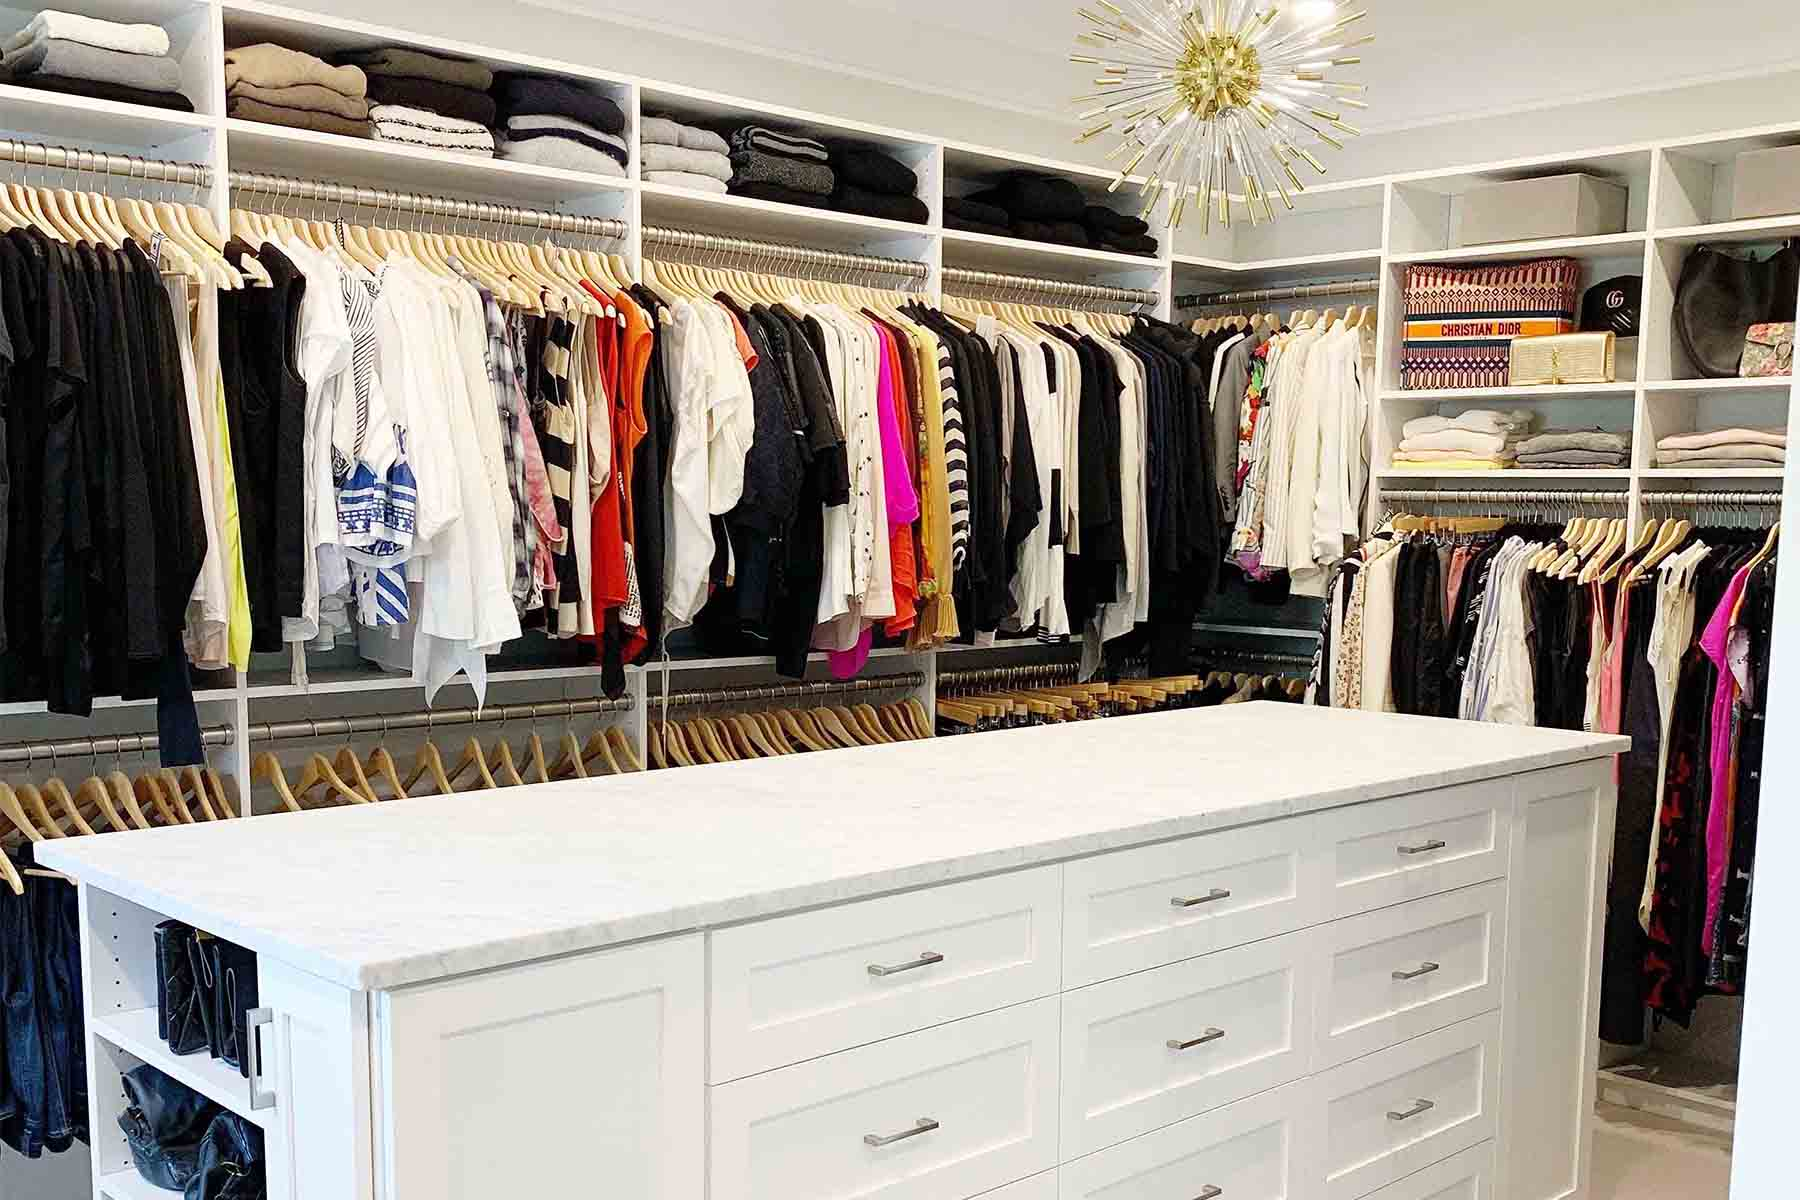 Organized clothes on double hanging rods